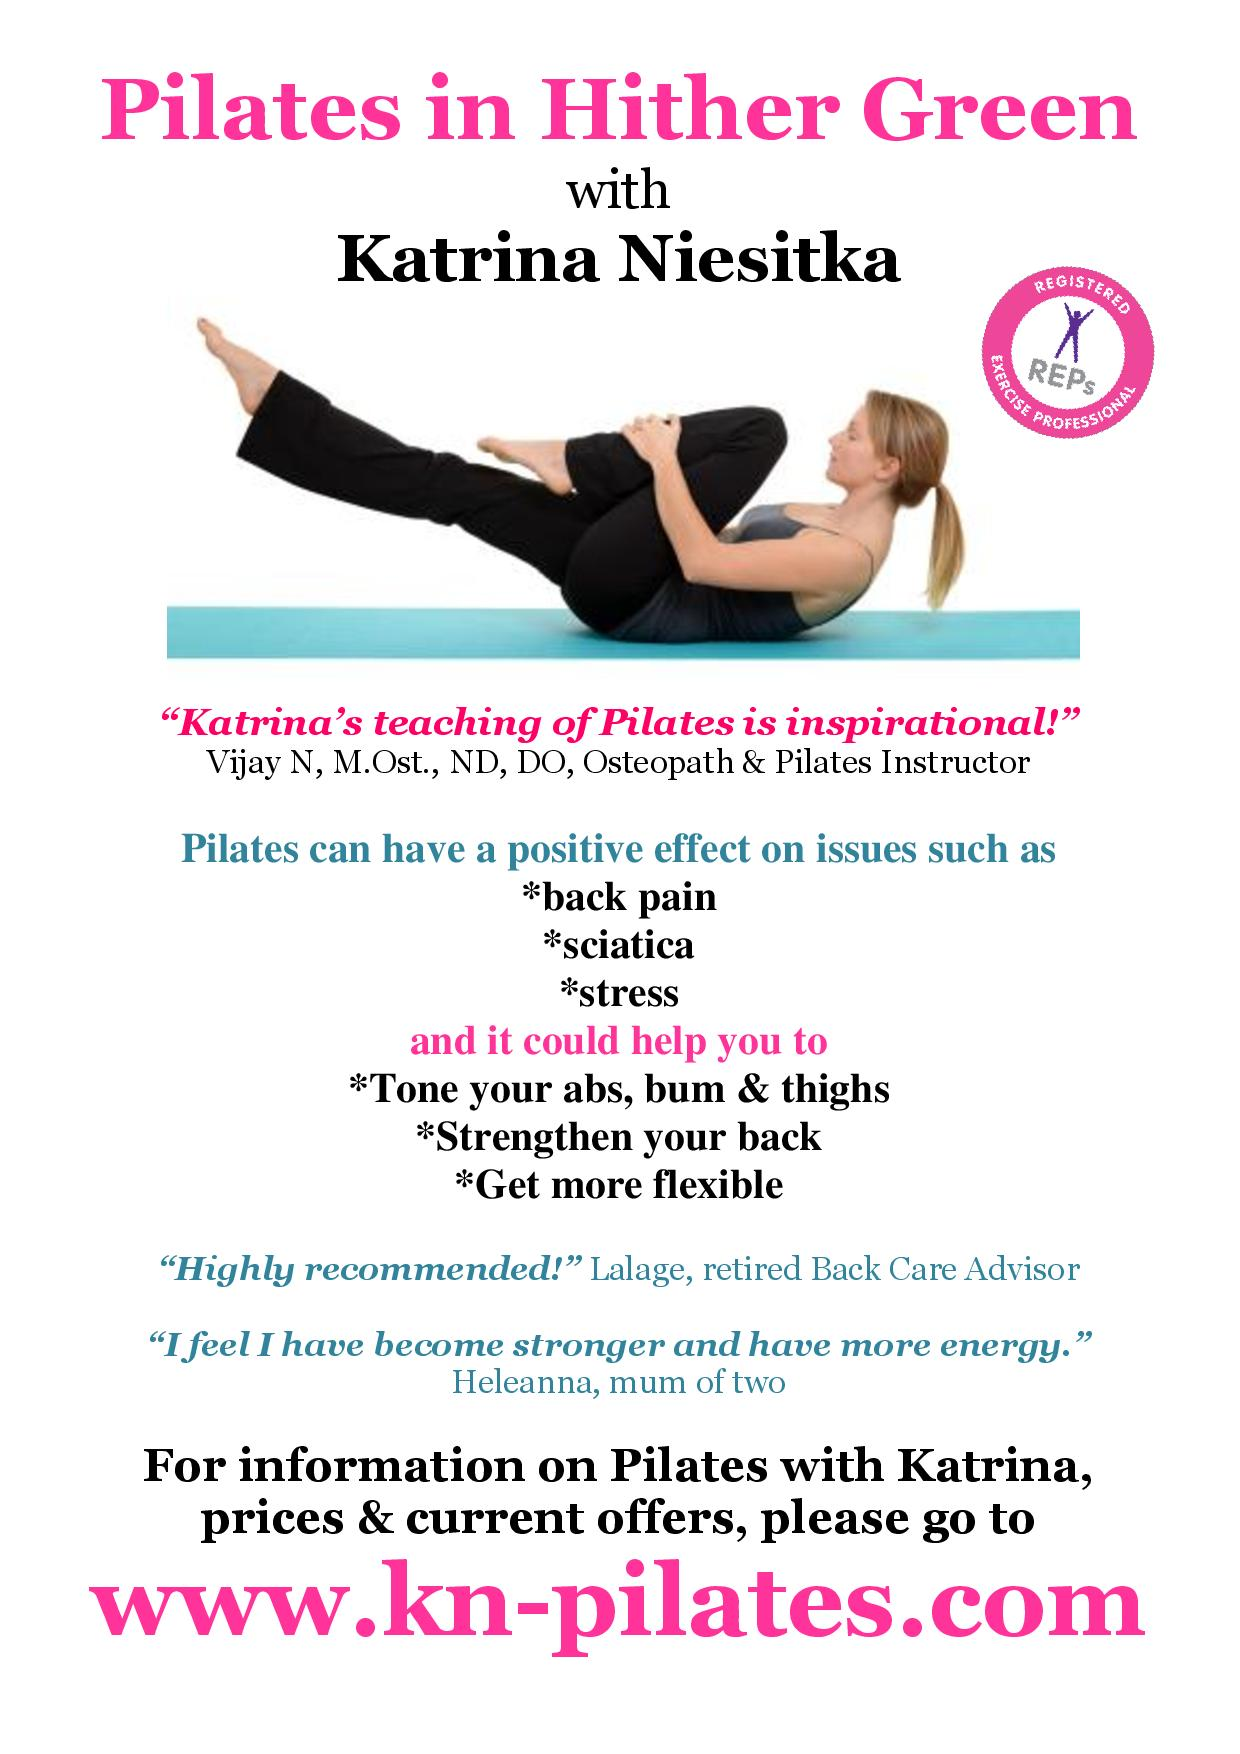 KN Pilates Hither Green-page-001